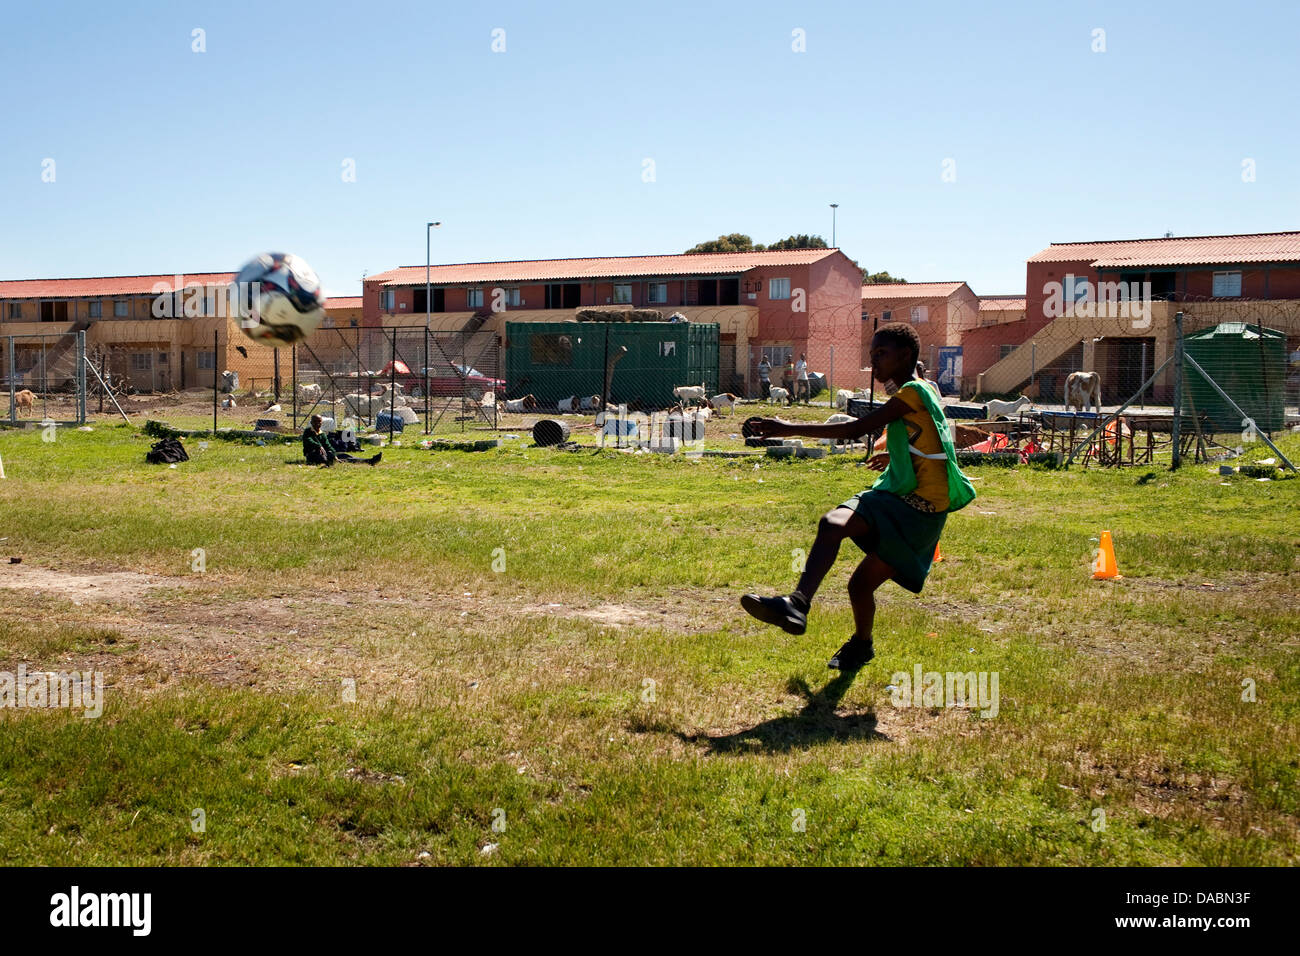 Grassroot Soccer uses power soccer to educate inspire mobilize communities to stop spread HIV goalie kicks ball - Stock Image